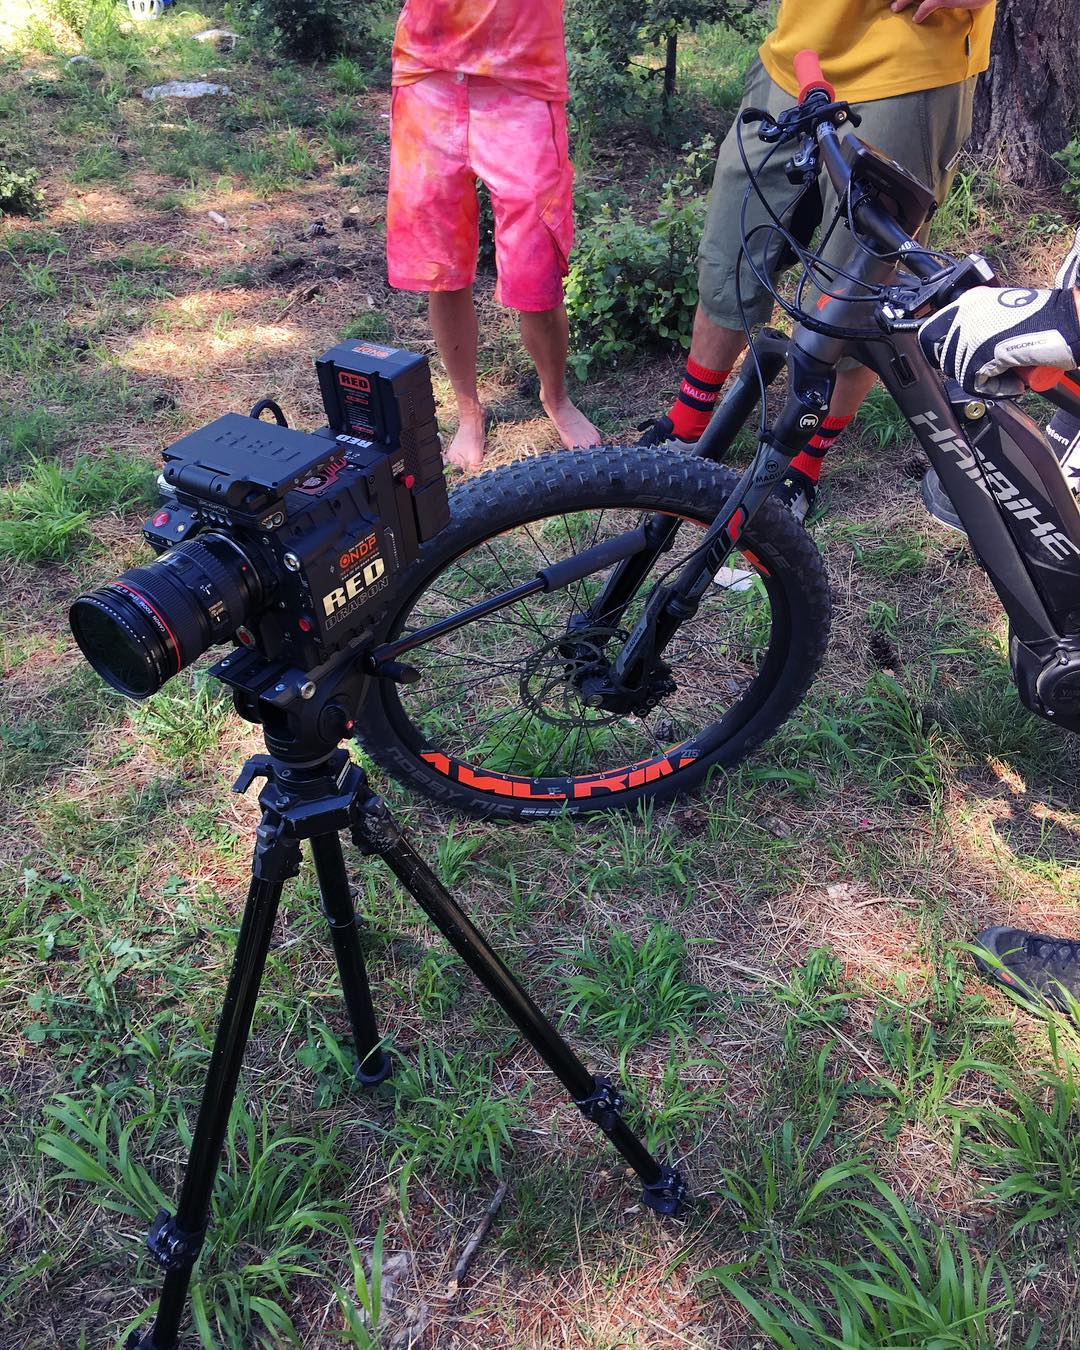 On set with @haibike_official ! #haibike #allmtn #sduro #yamaha #emtb #mtb #design